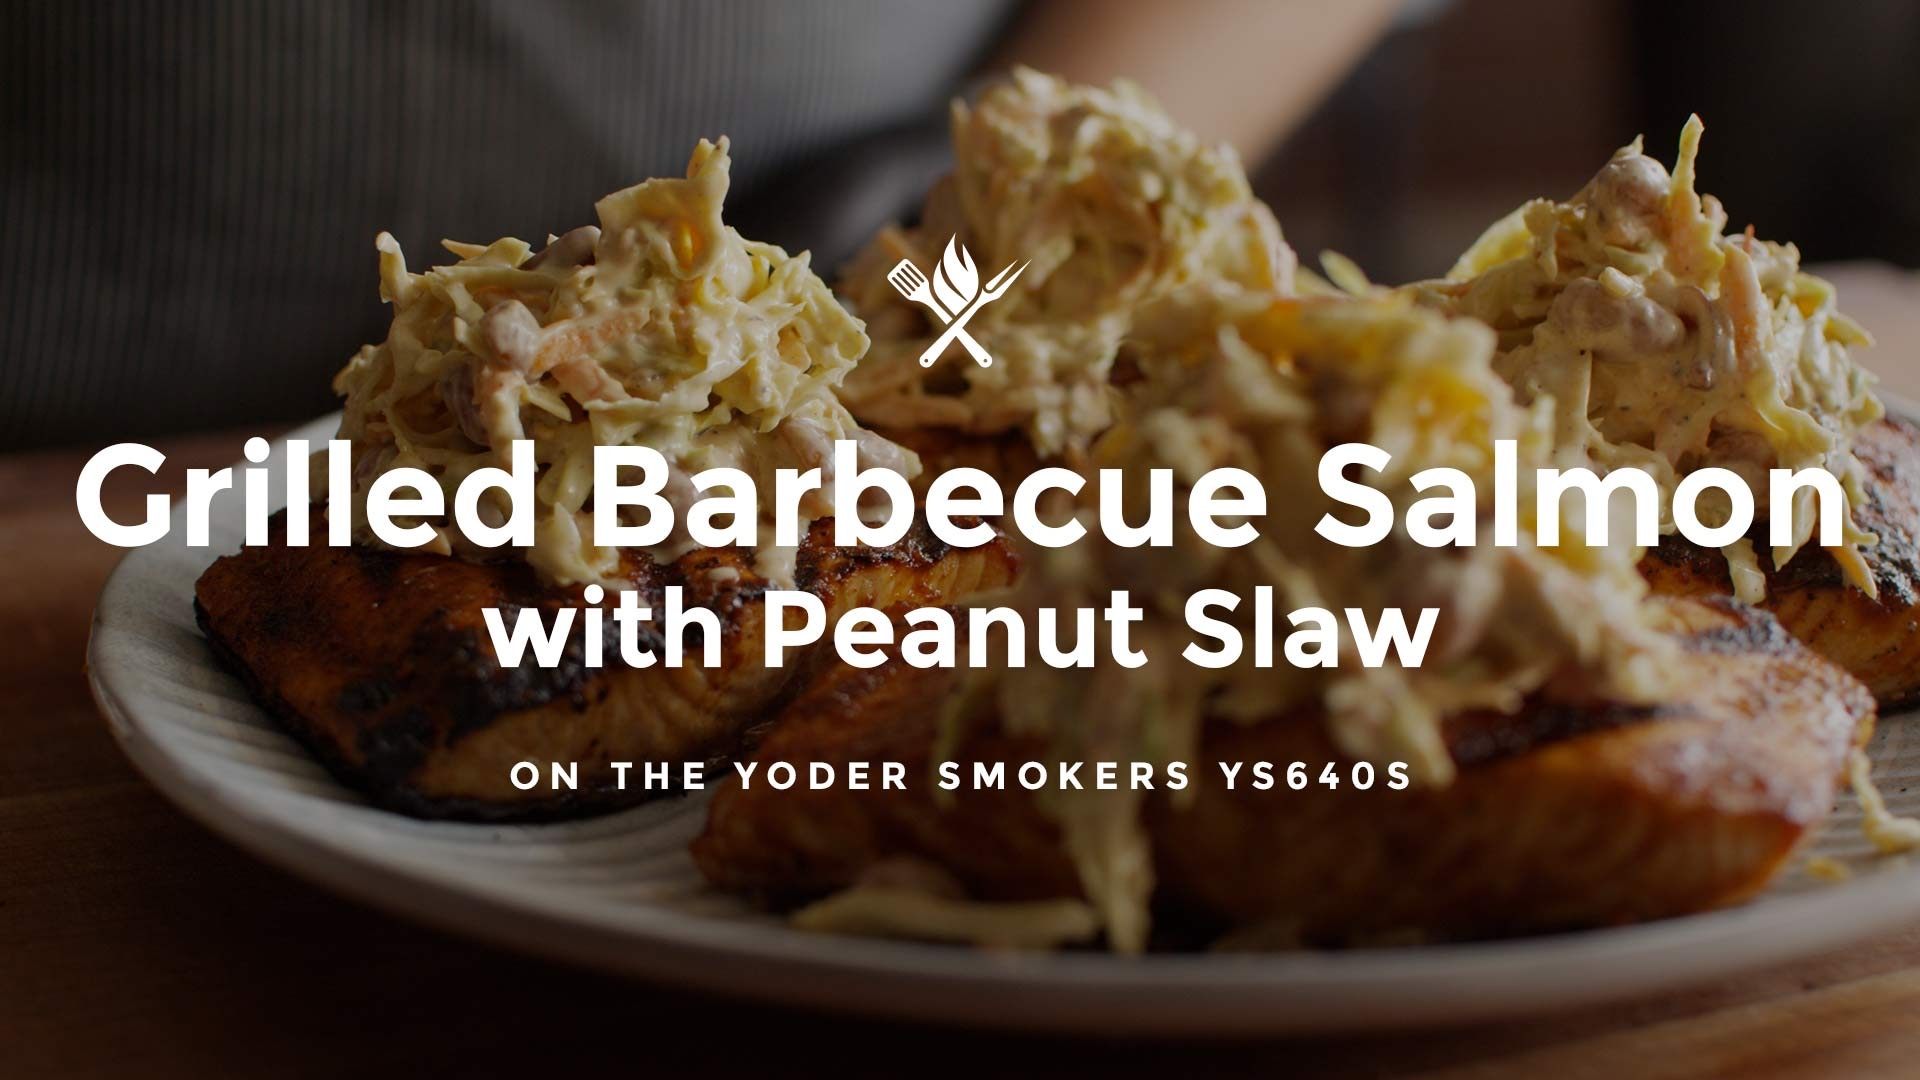 How to make Grilled Barbecue Salmon with Peanut Slaw